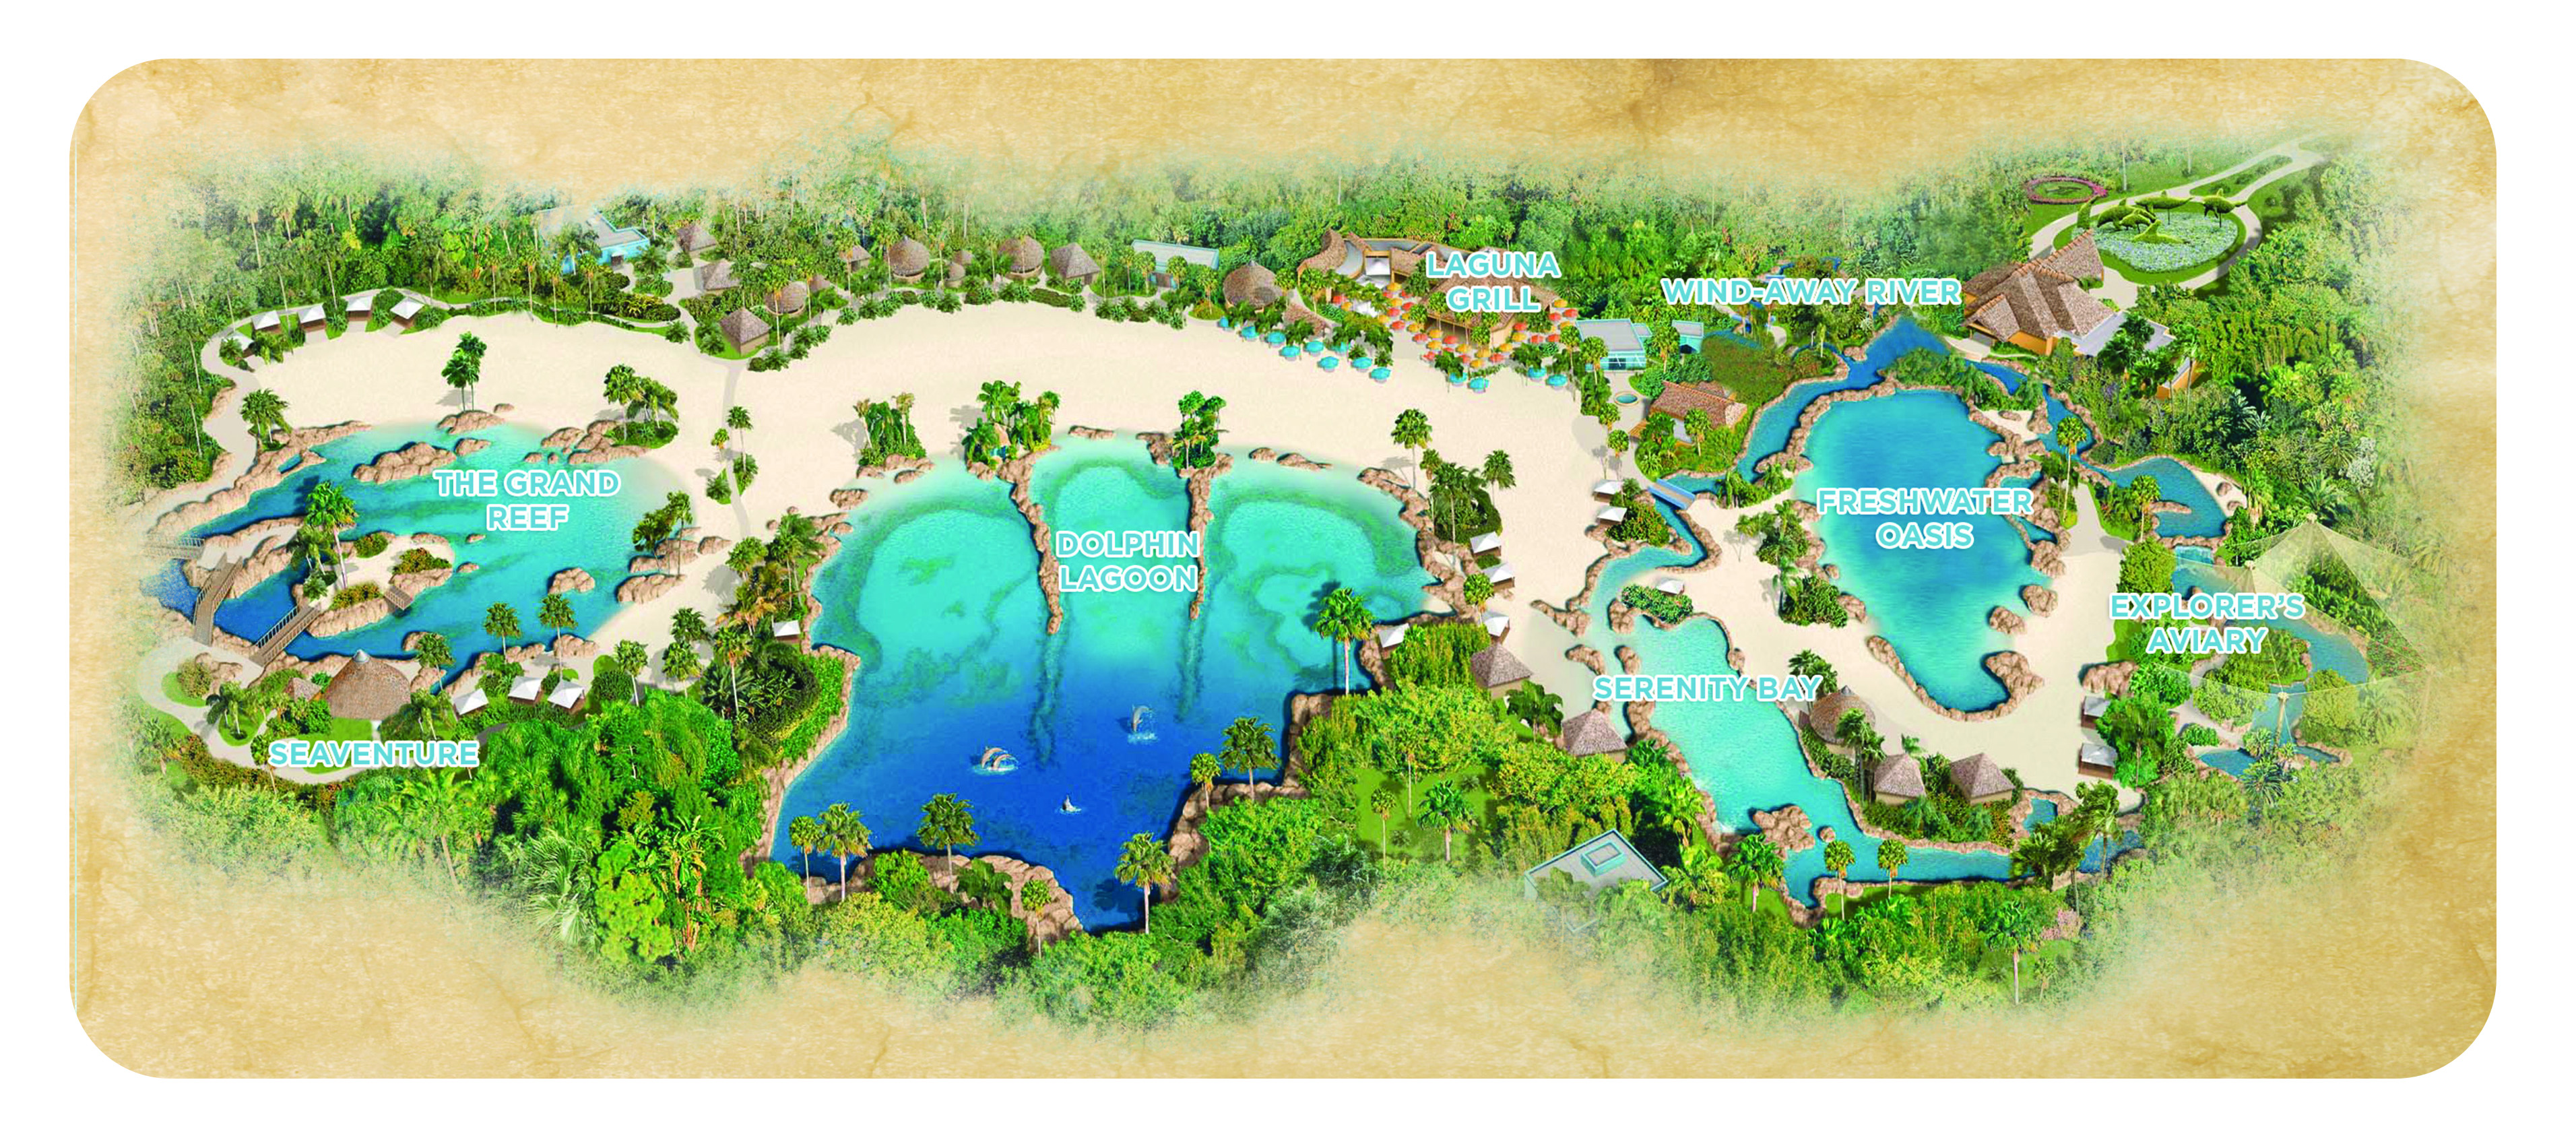 Discovery Cove park map